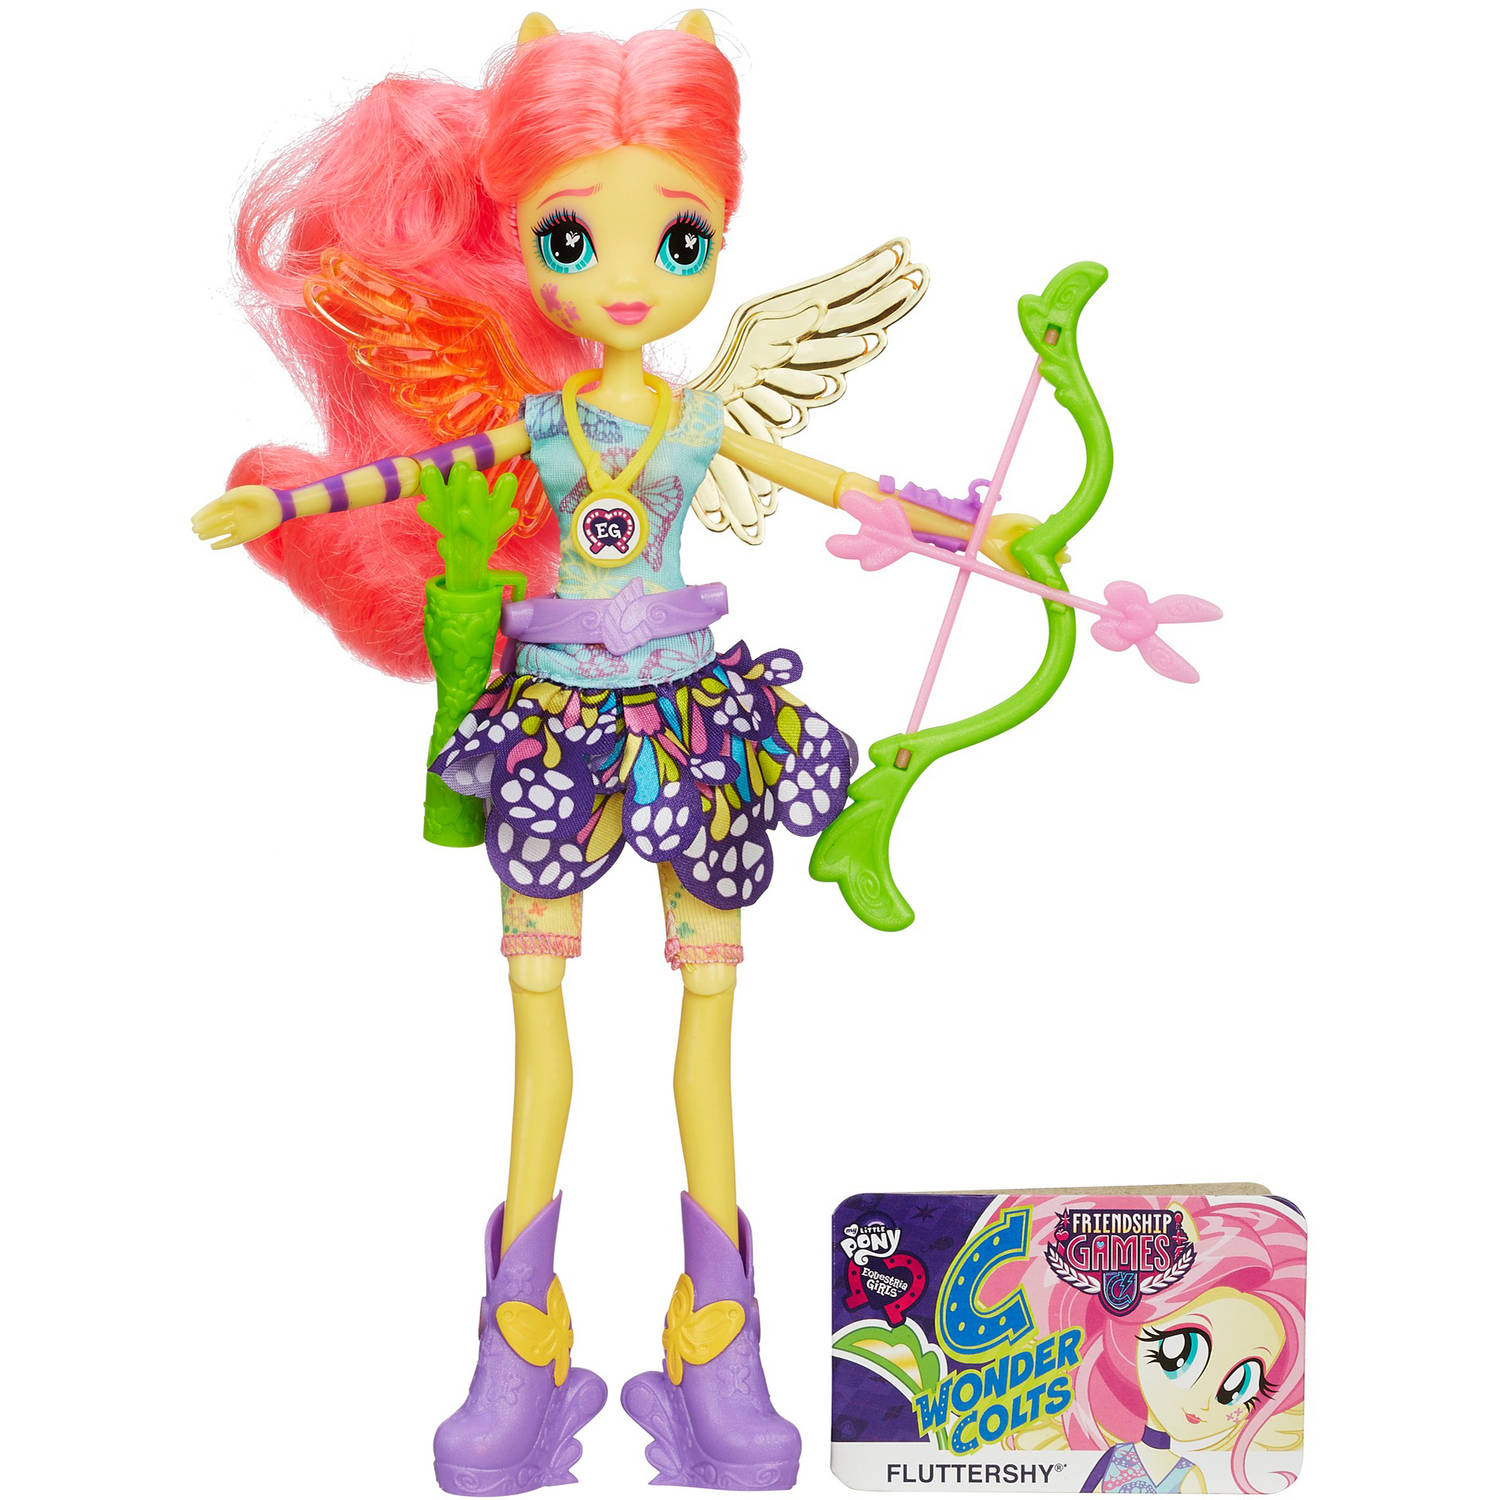 My Little Pony Equestria Girls Fluttershy Sporty Style Archery Doll by Hasbro